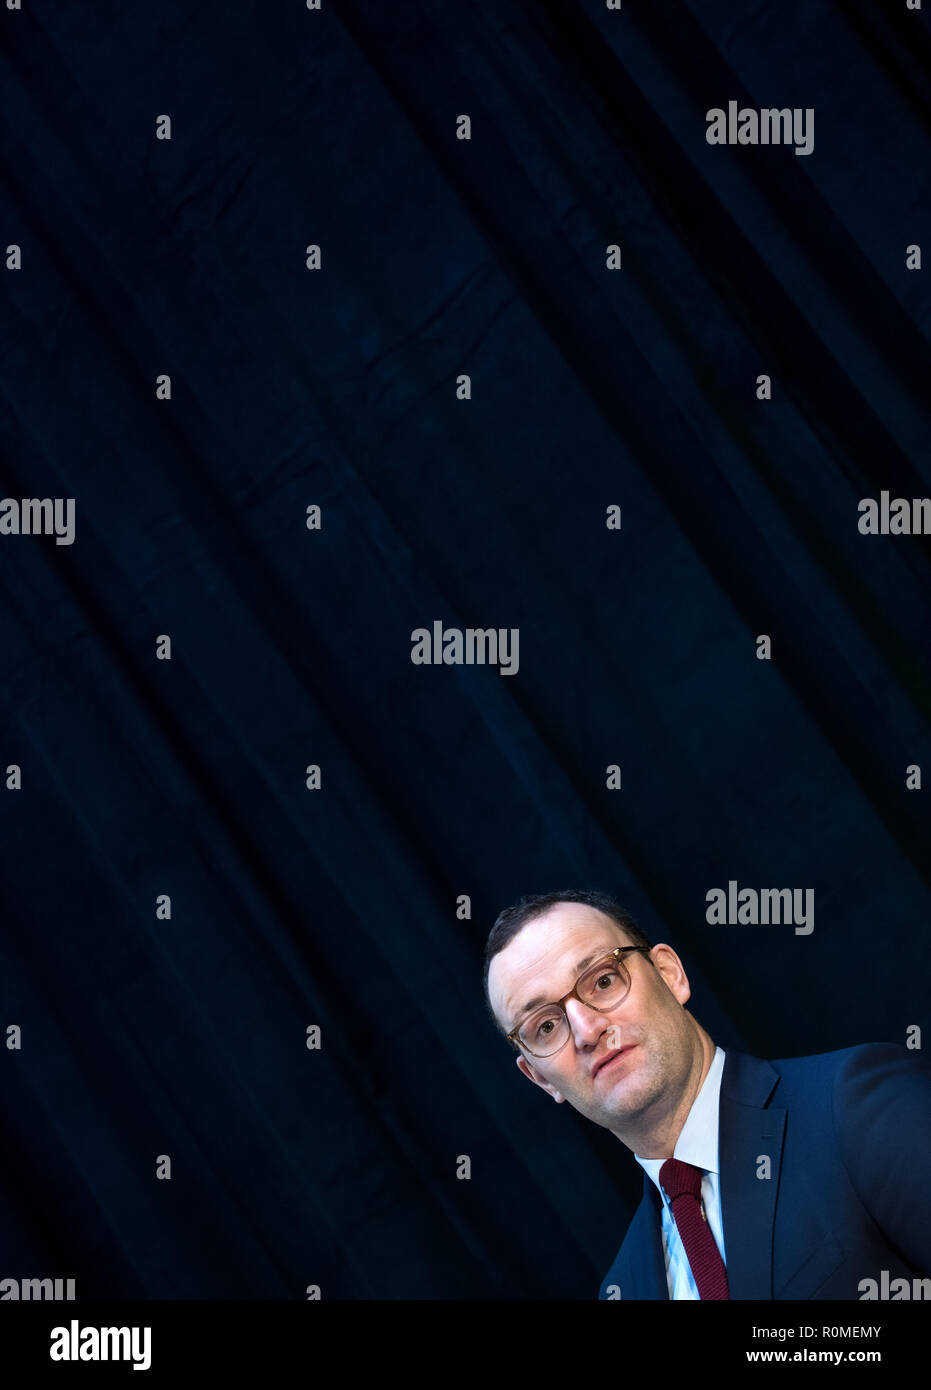 Berlin, Germany. 06th Nov, 2018. Jens Spahn (CDU), Federal Minister of Health, speaks at the Federal Congress on School Catering on the occasion of the presentation of a study by the German Nutrition Society on cost and price structures in school catering. More than three million pupils at all-day schools eat lunch every day at school. Credit: Bernd von Jutrczenka/dpa/Alamy Live News - Stock Image